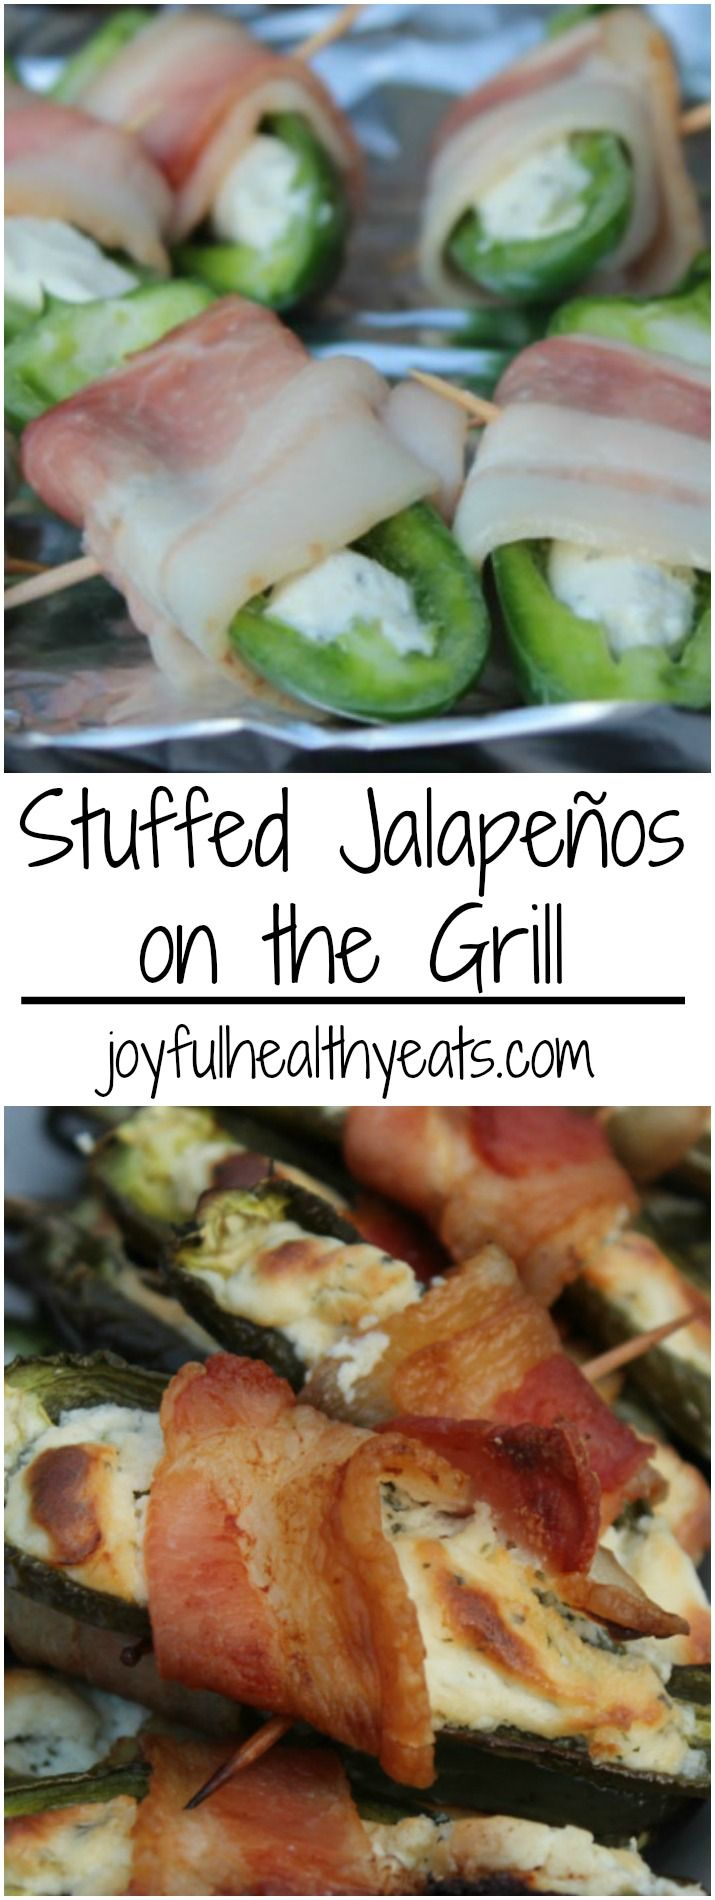 Who is ready for some Football this weekend!? These Stuffed Jalapeños on the Grill will be a definite favorite appetizer for your gatherings! | joyfulhealthyeats.com